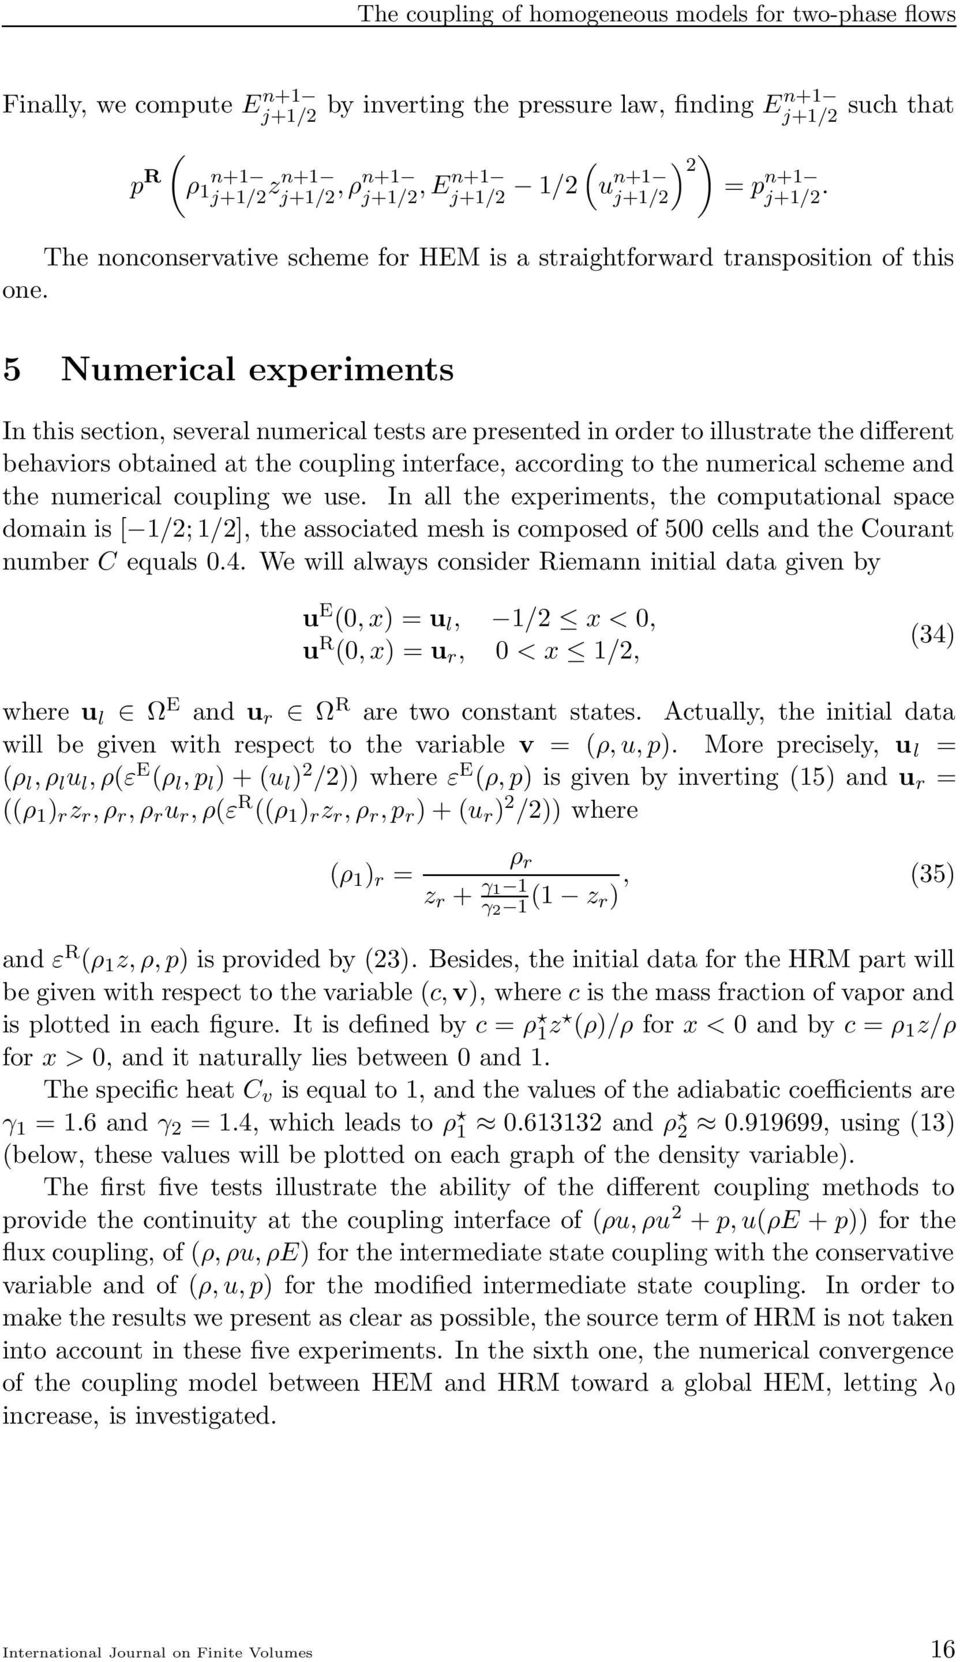 5 Numerical experiments In this section, several numerical tests are presented in order to illustrate the different behaviors obtained at the coupling interface, according to the numerical scheme and